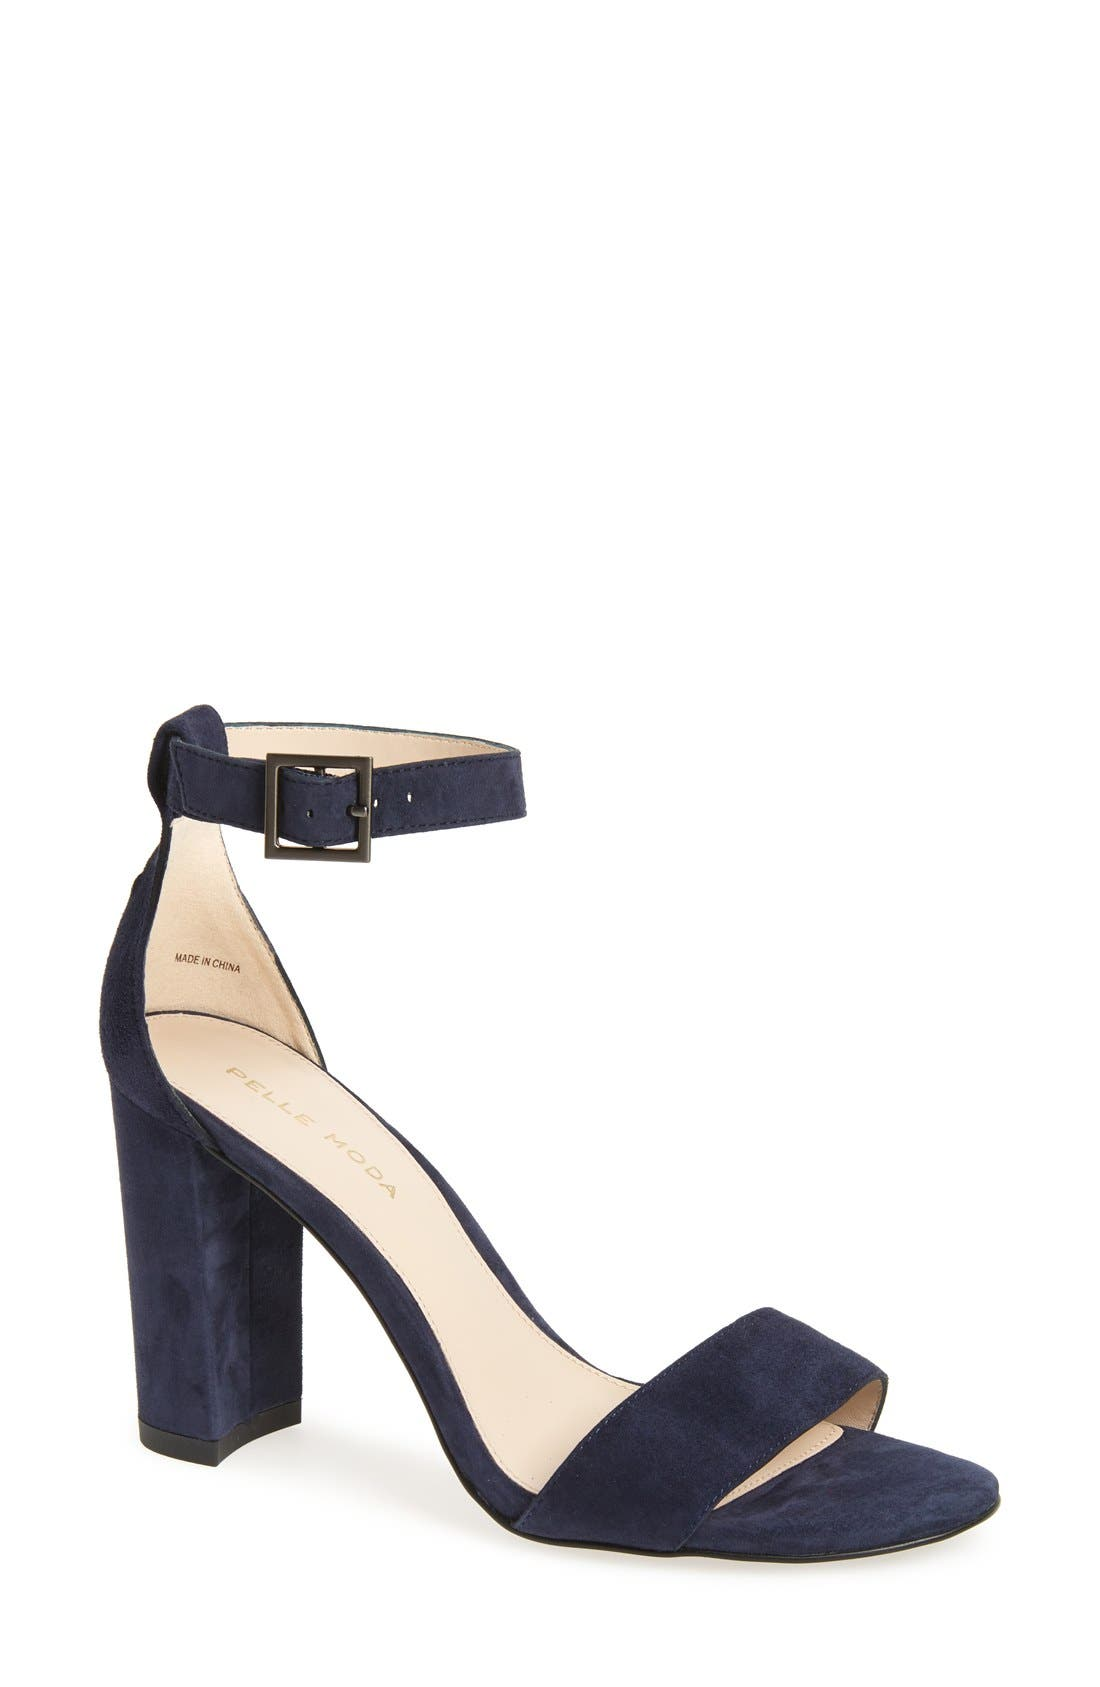 PELLE MODA,                             Bonnie Ankle Strap Sandal,                             Main thumbnail 1, color,                             MIDNIGHT BLUE SUEDE